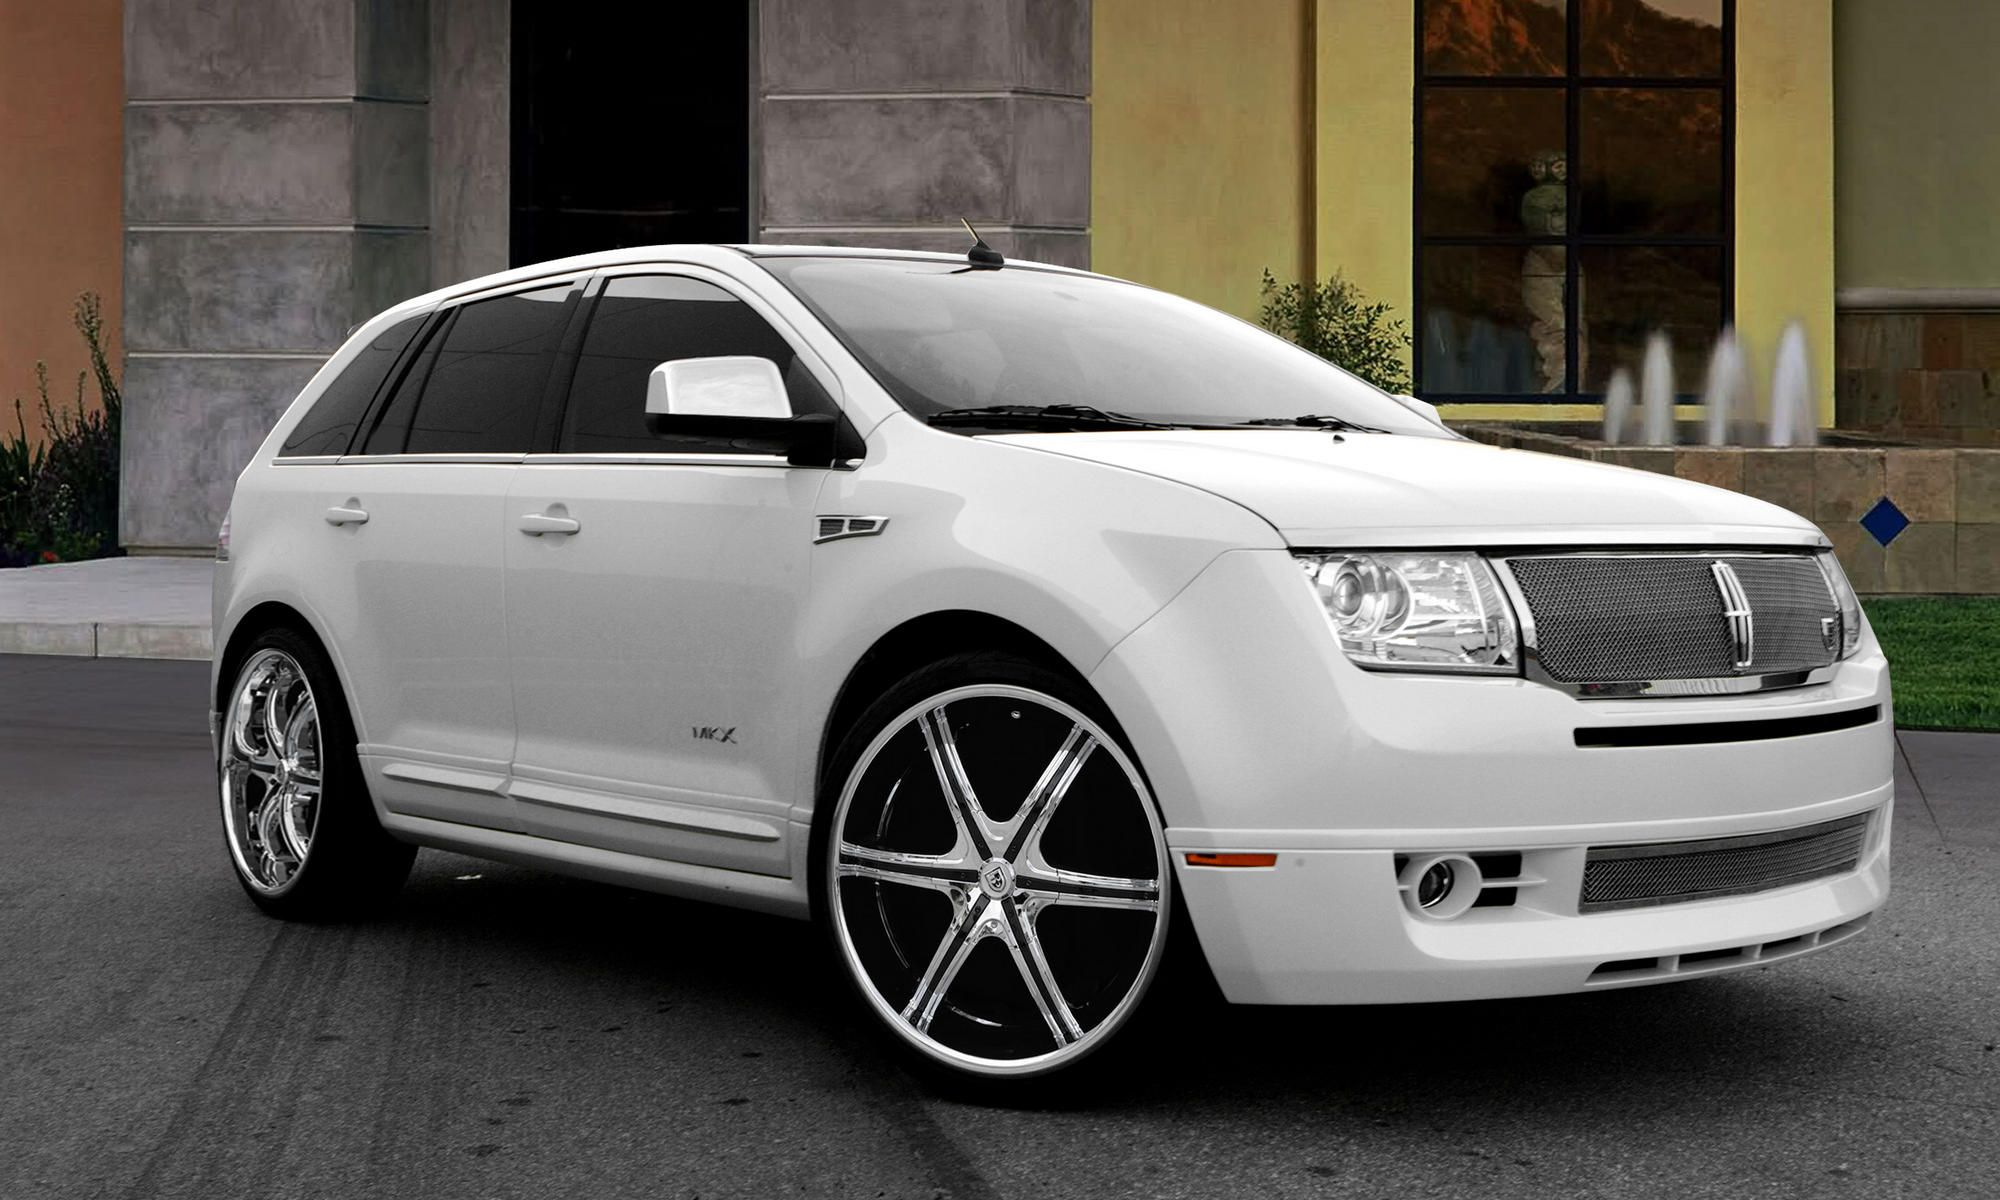 148469db48105aae36ed32be88b6d96f lexani wheels, the leader in custom luxury wheels white lincoln 2008 MKX Interior at gsmportal.co